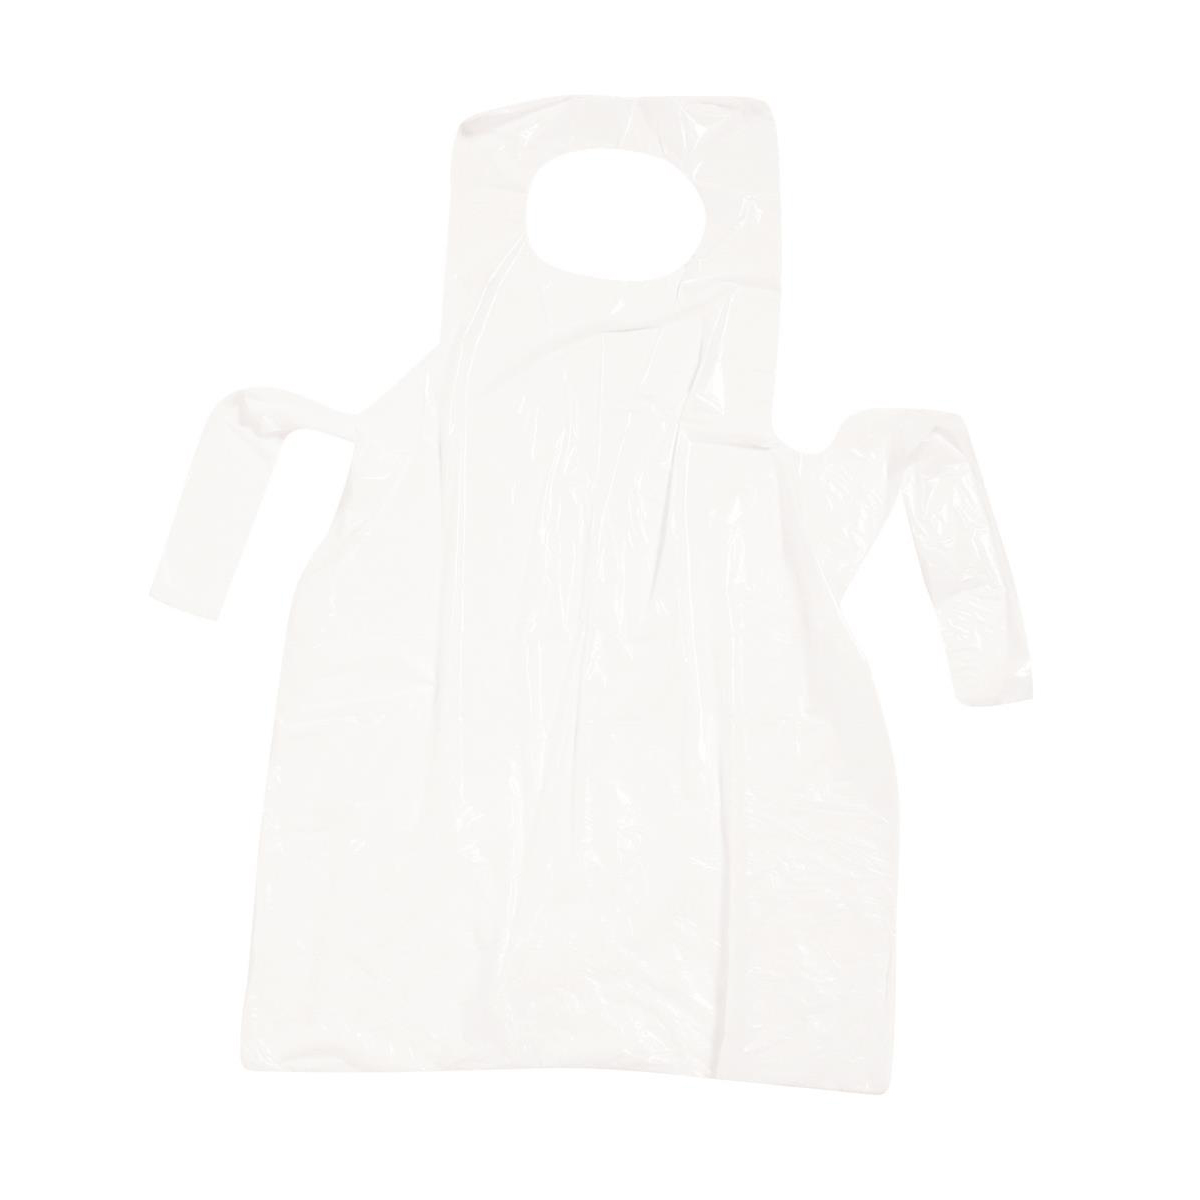 Image for Aprons On Roll Polythene 17 Micron 27x46in Clear [Roll of 200]